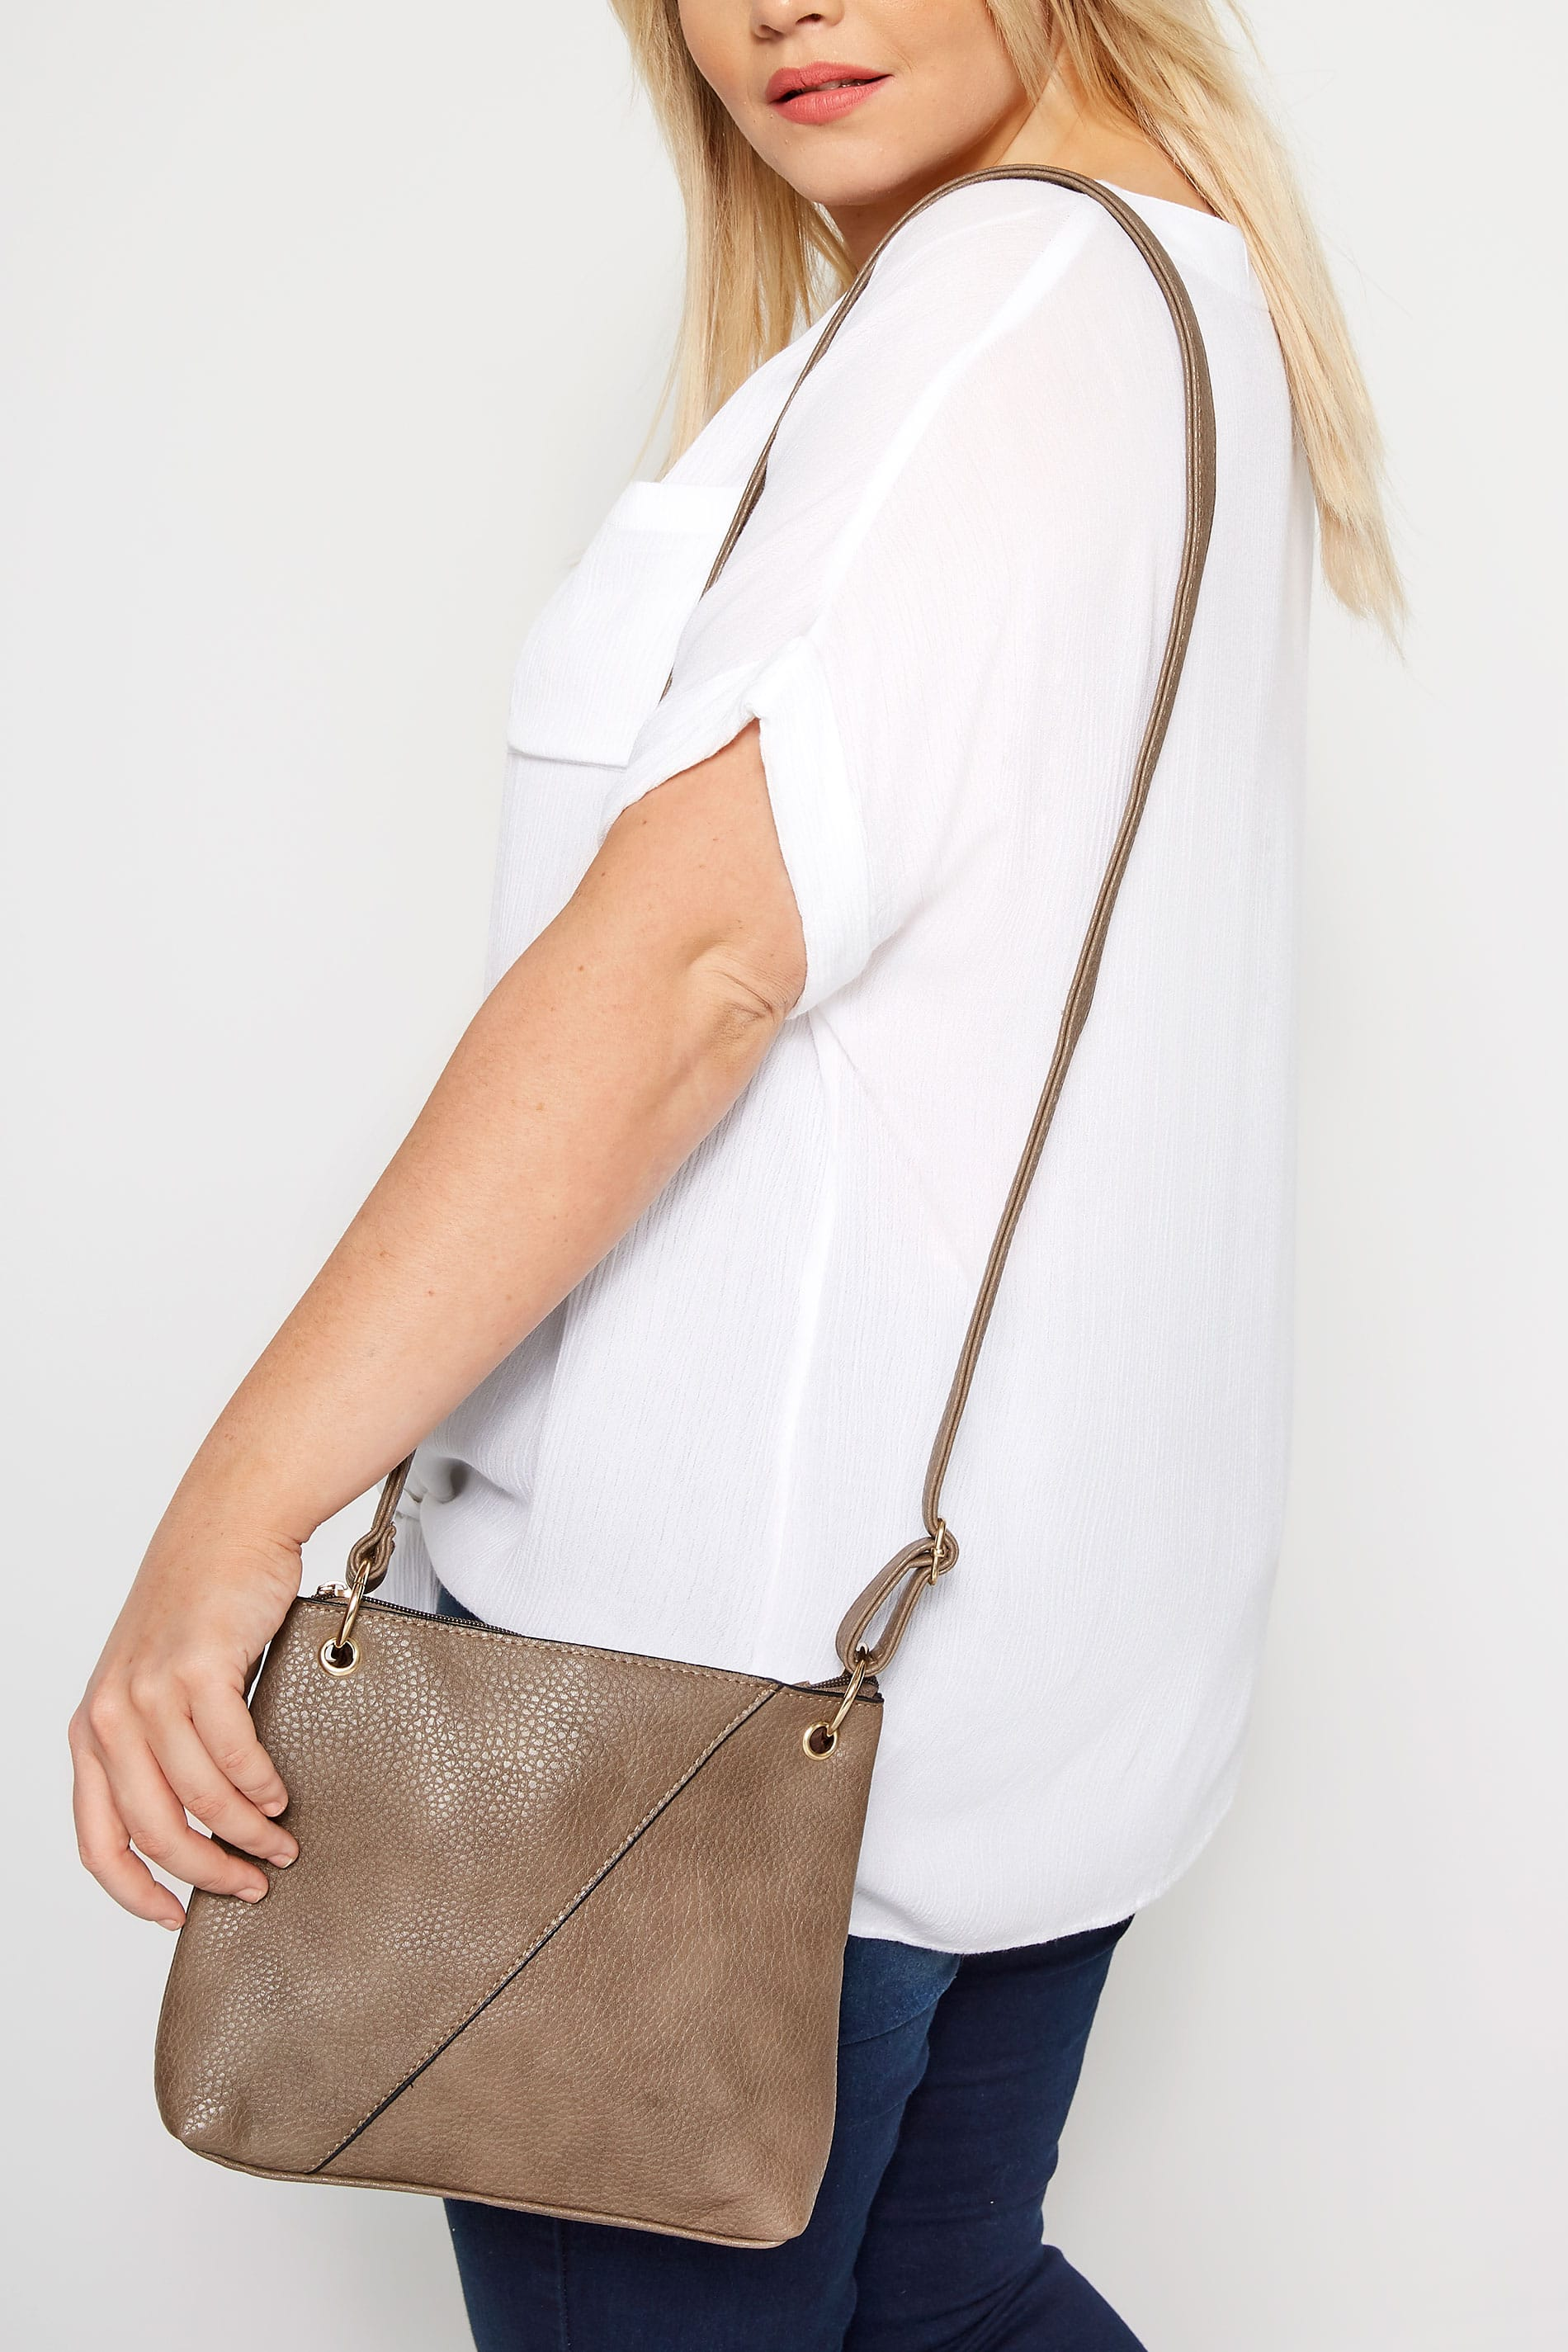 rollins college linkedin Cross Body Tasche Braun